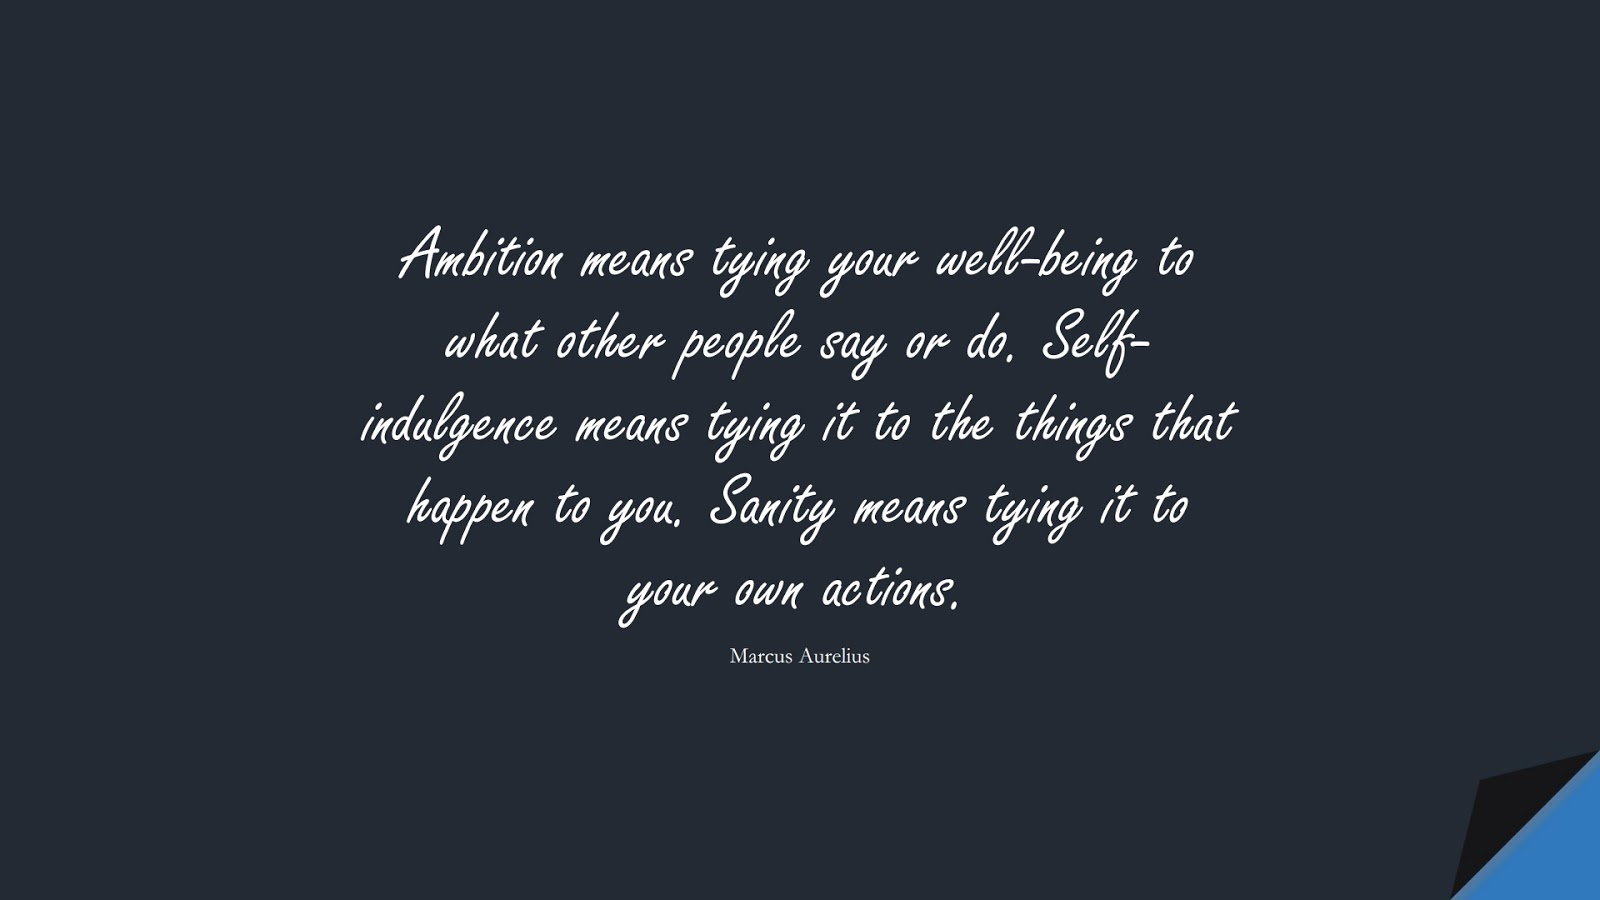 Ambition means tying your well-being to what other people say or do. Self-indulgence means tying it to the things that happen to you. Sanity means tying it to your own actions. (Marcus Aurelius);  #MarcusAureliusQuotes